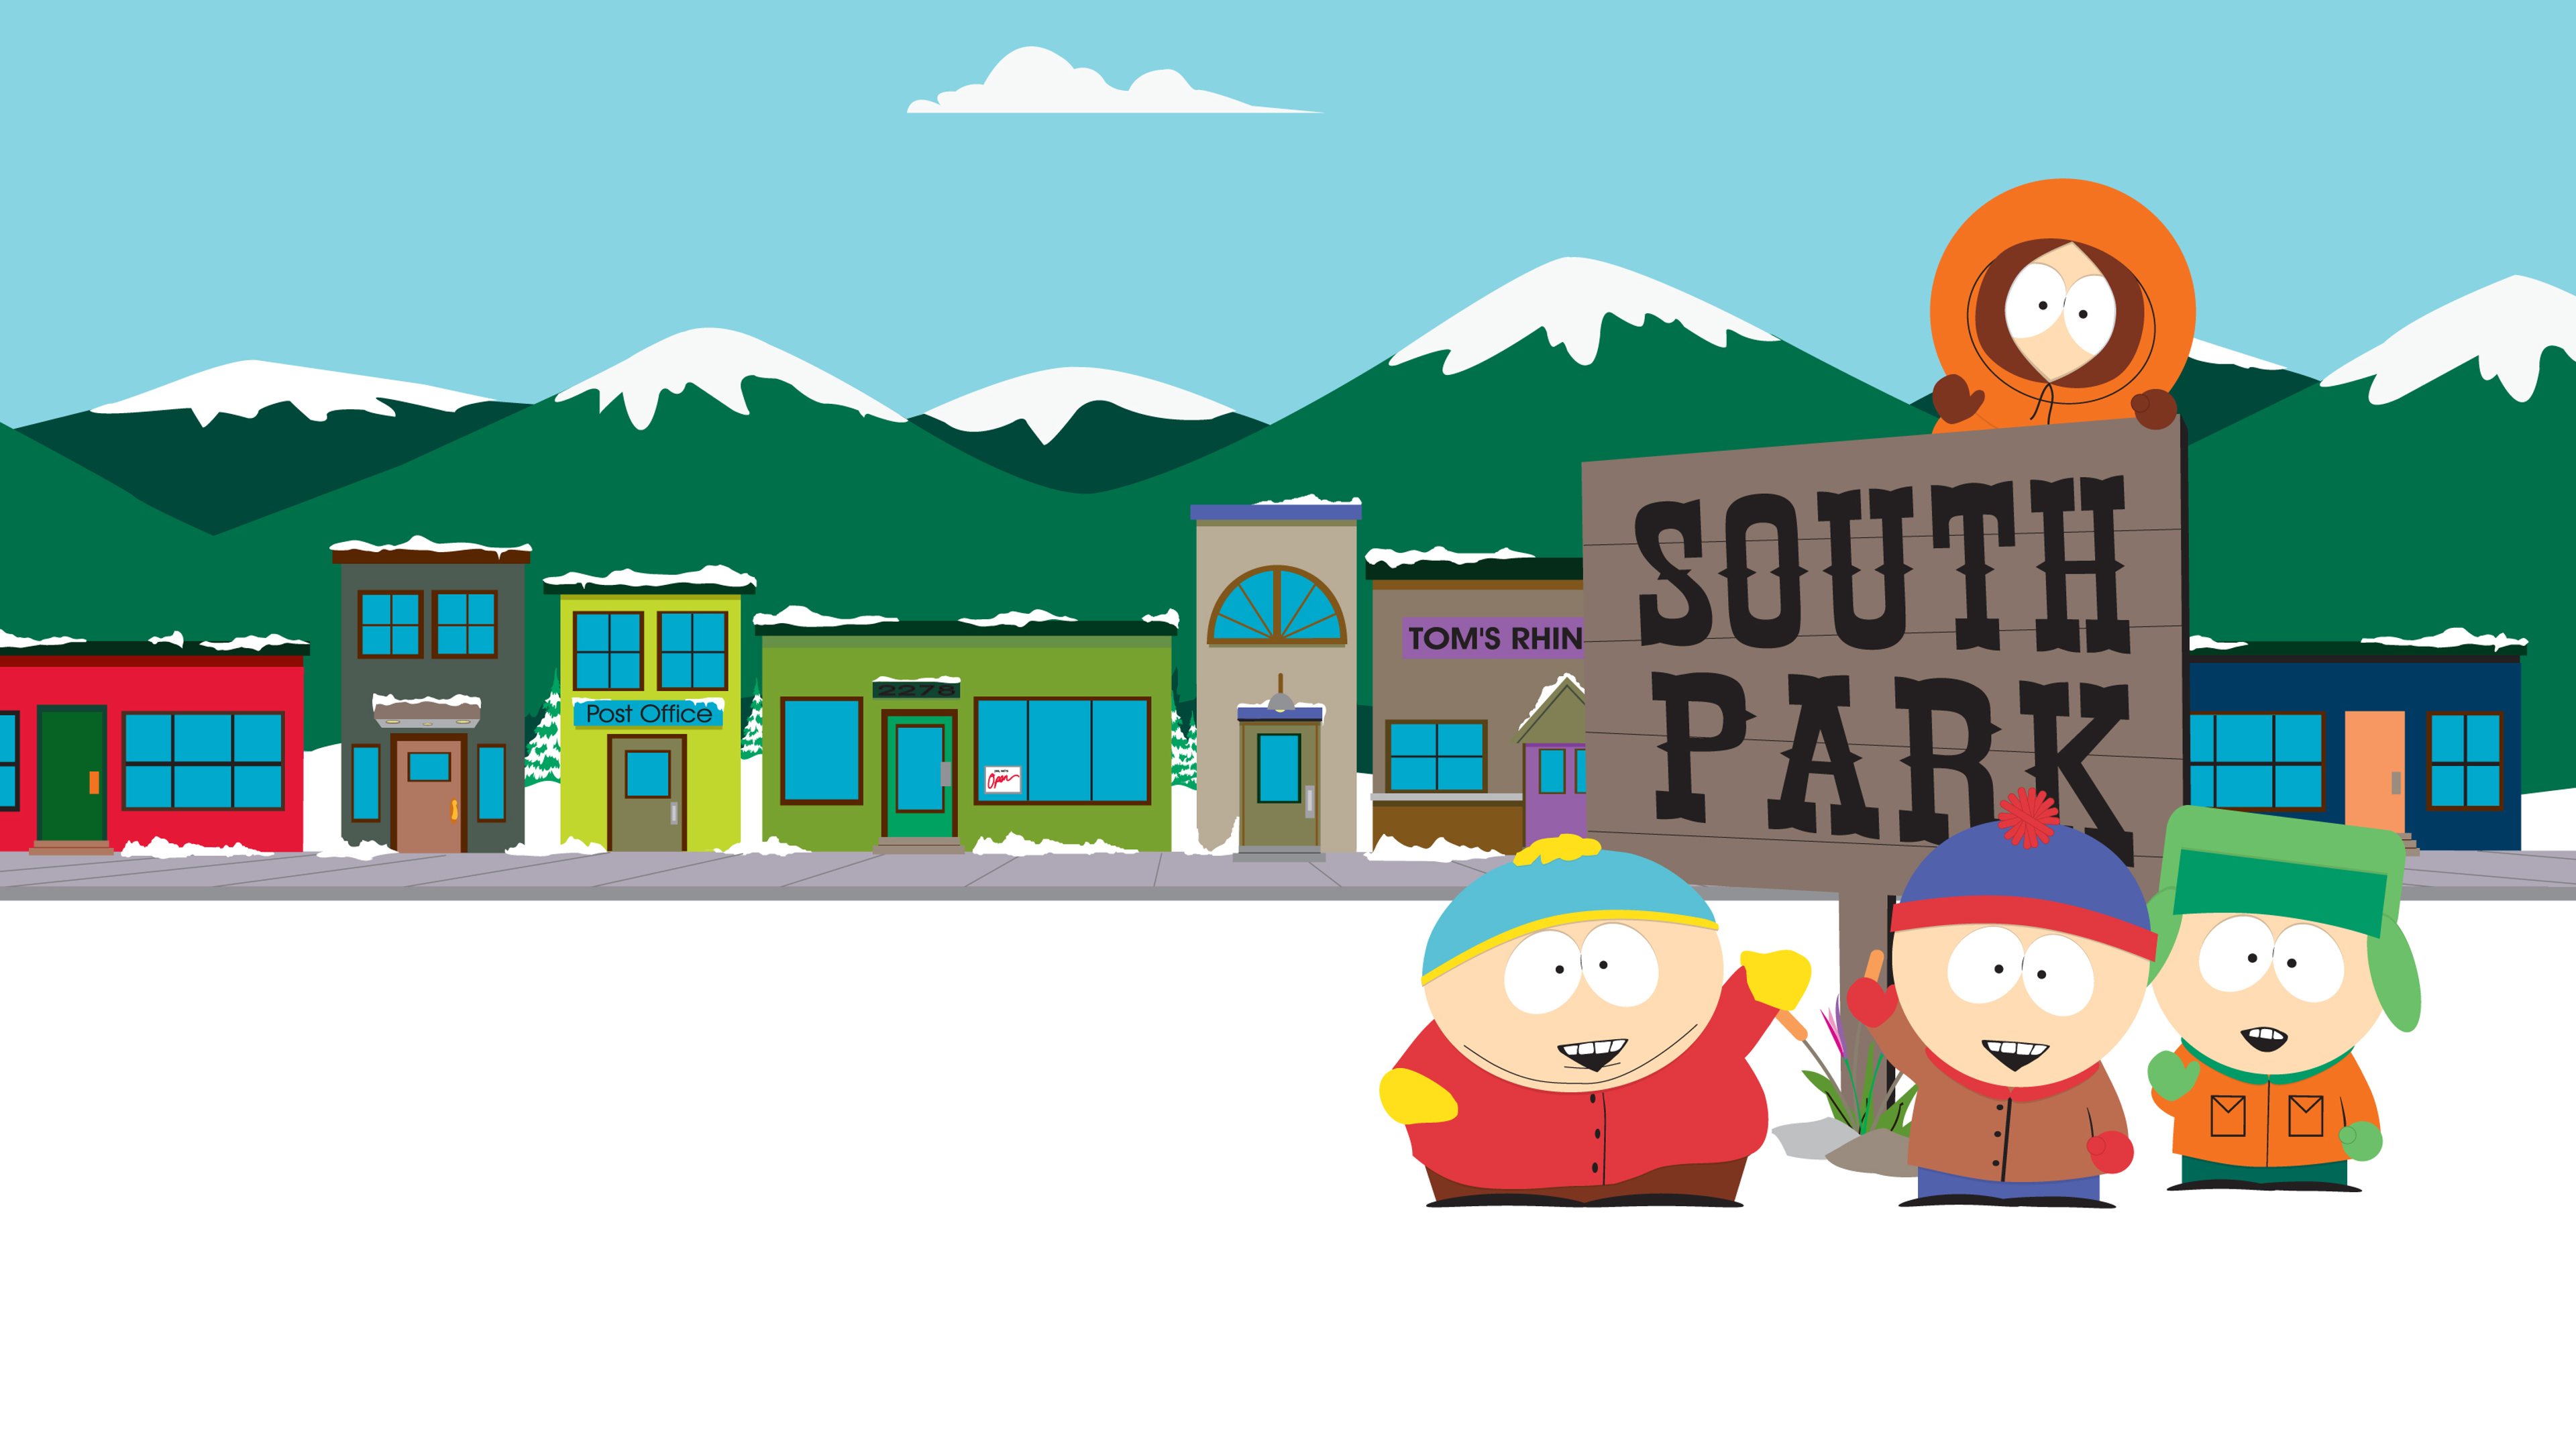 Wallpapers Hd Iphone 5 South Park Backgrounds Pictures Images